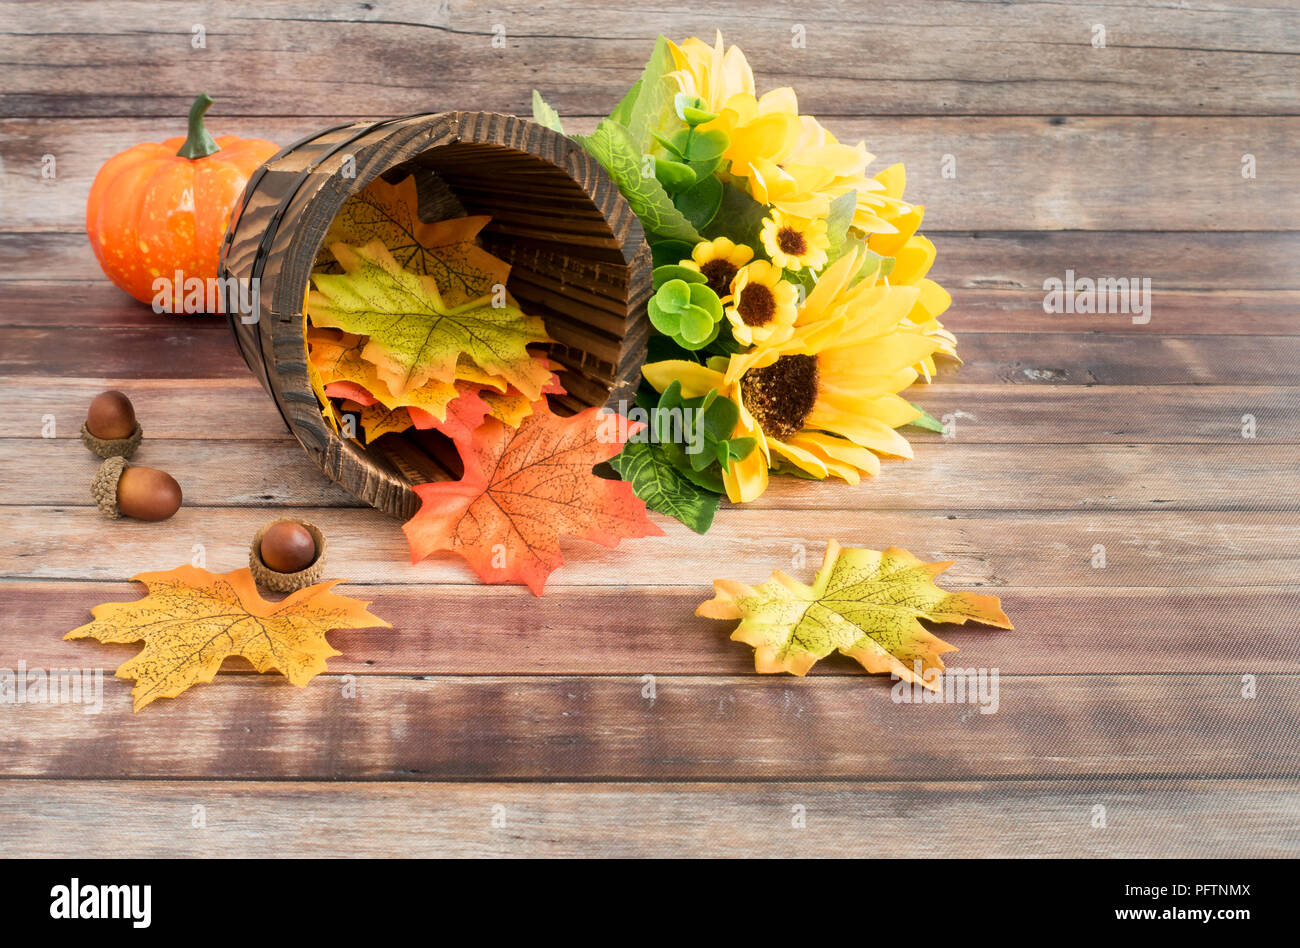 Sunflower bouquet, pumpkin, acorns and a rustic wooden plant pot filled with colorful autumn leaves on brown wood panels. - Stock Image